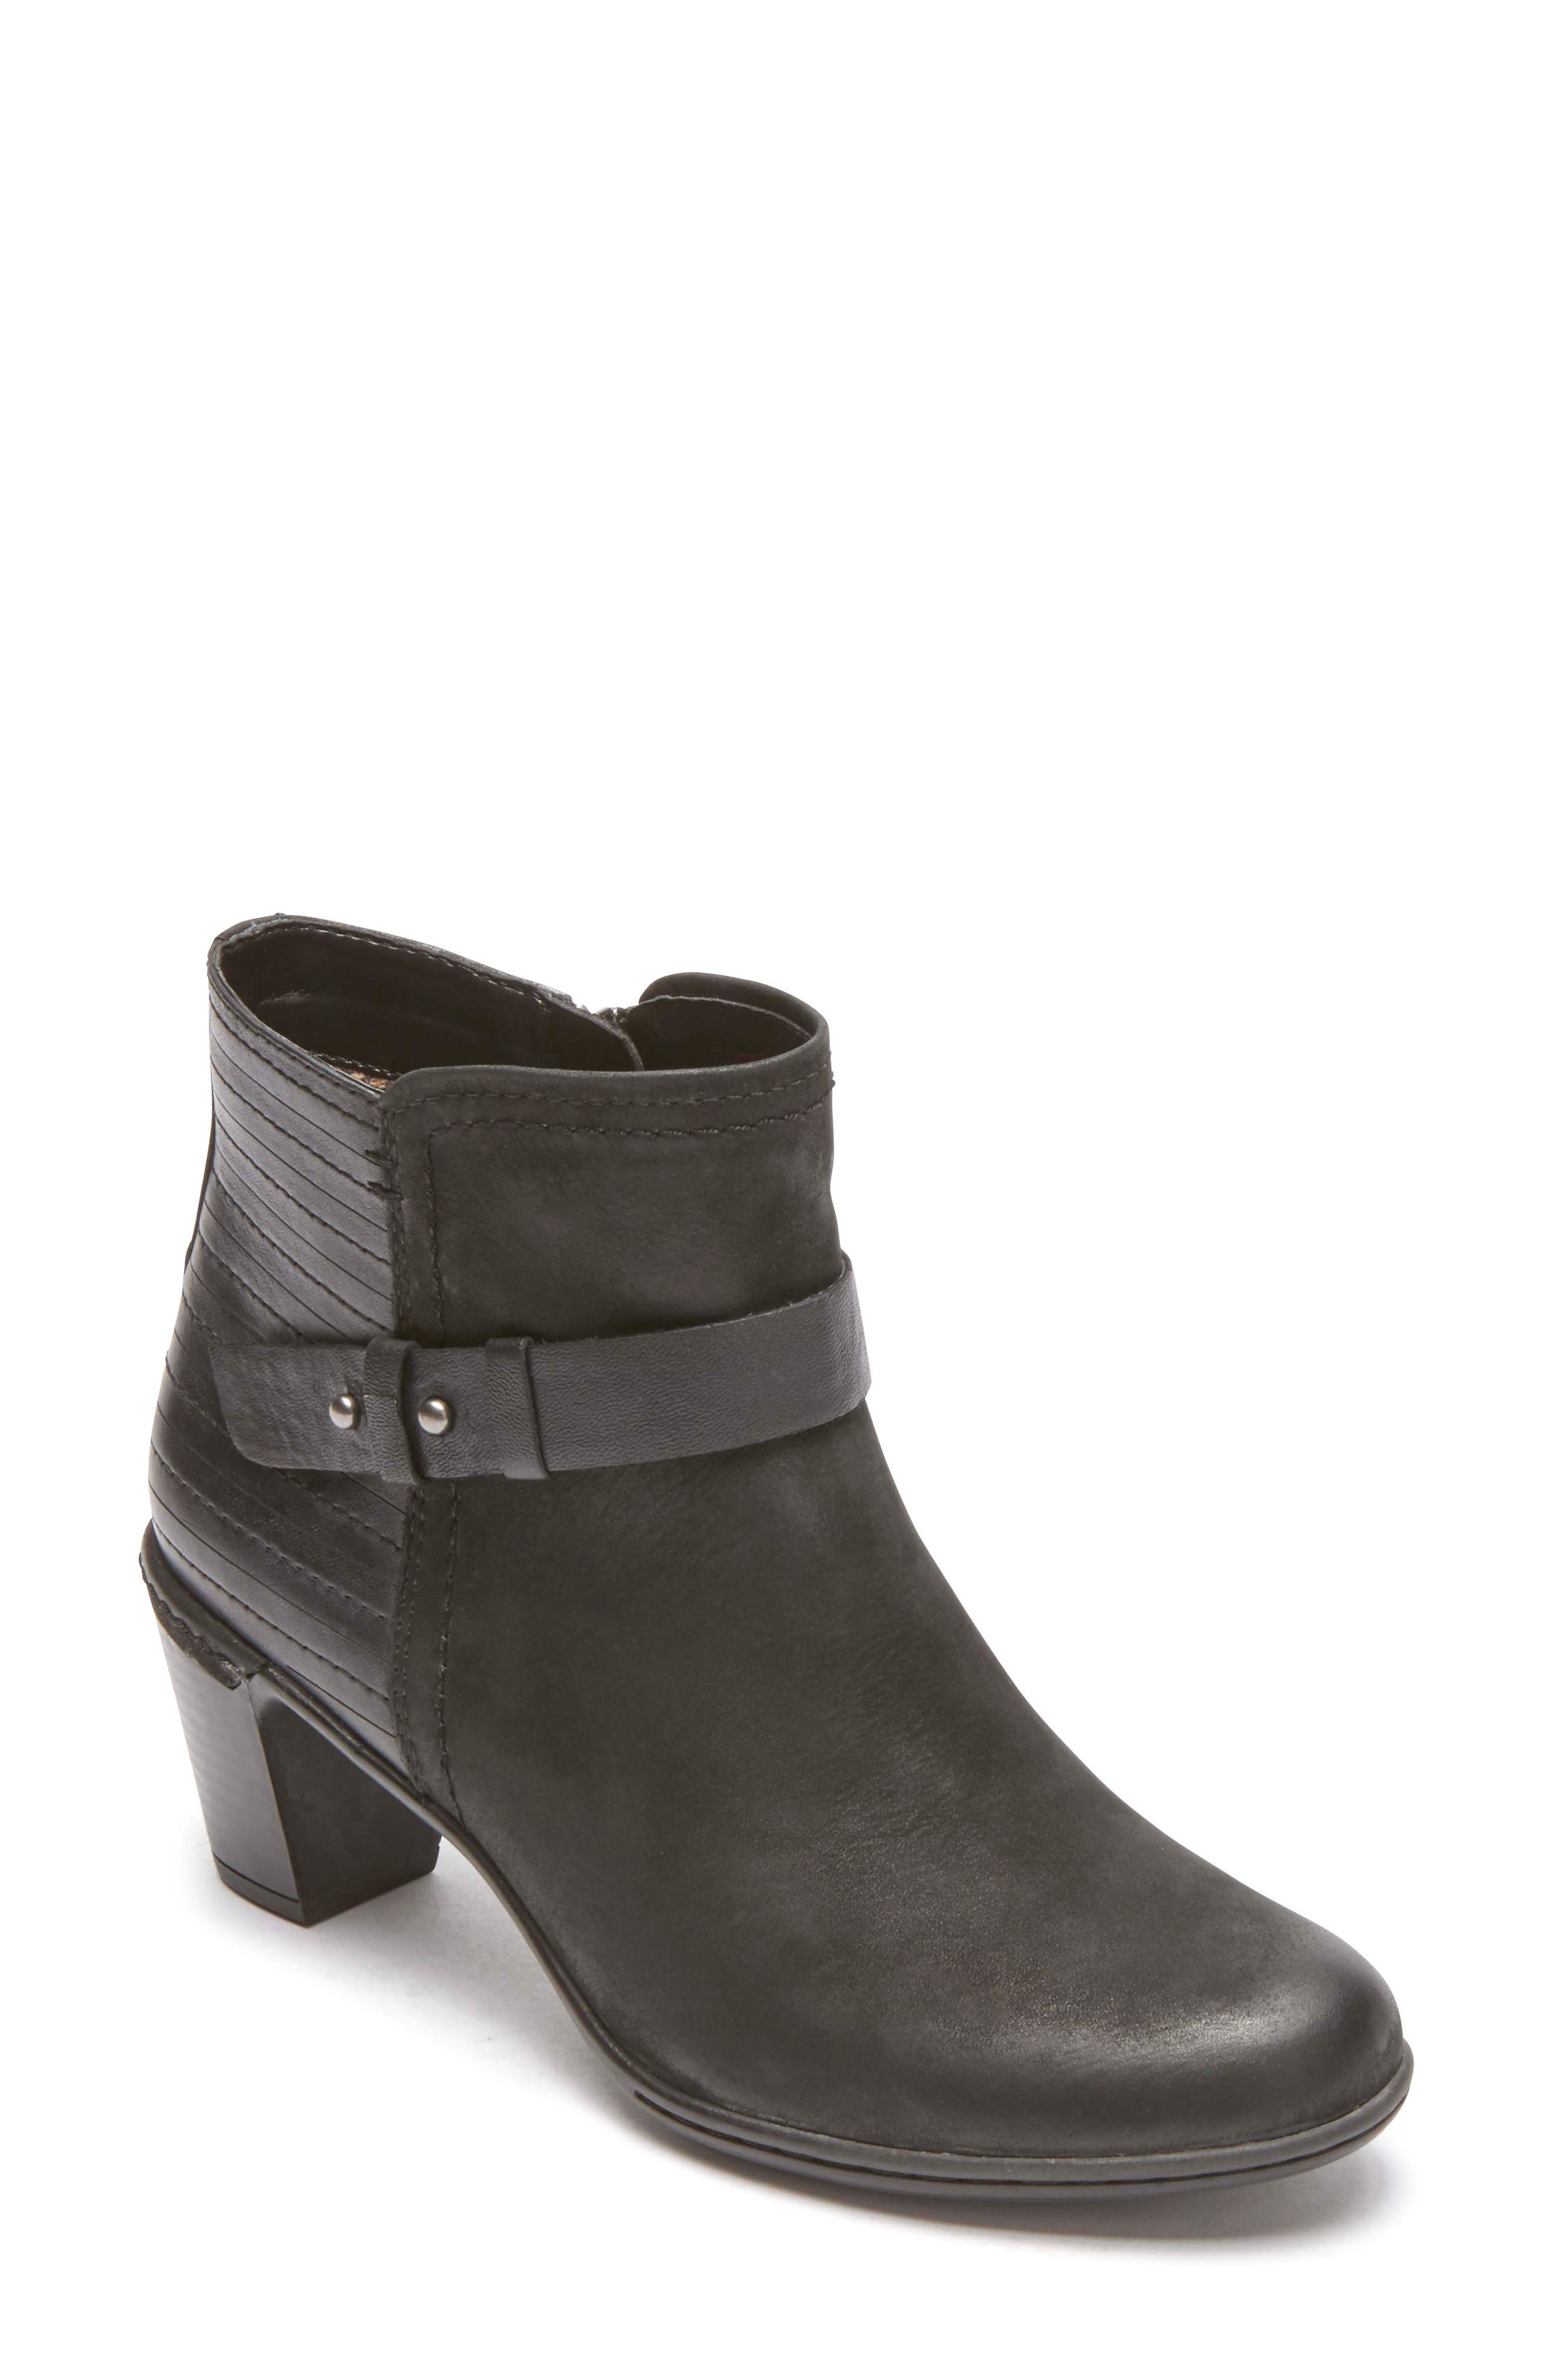 Alternate Image 1 Selected - Rockport Cobb Hill Rashel Buckle Bootie (Women)